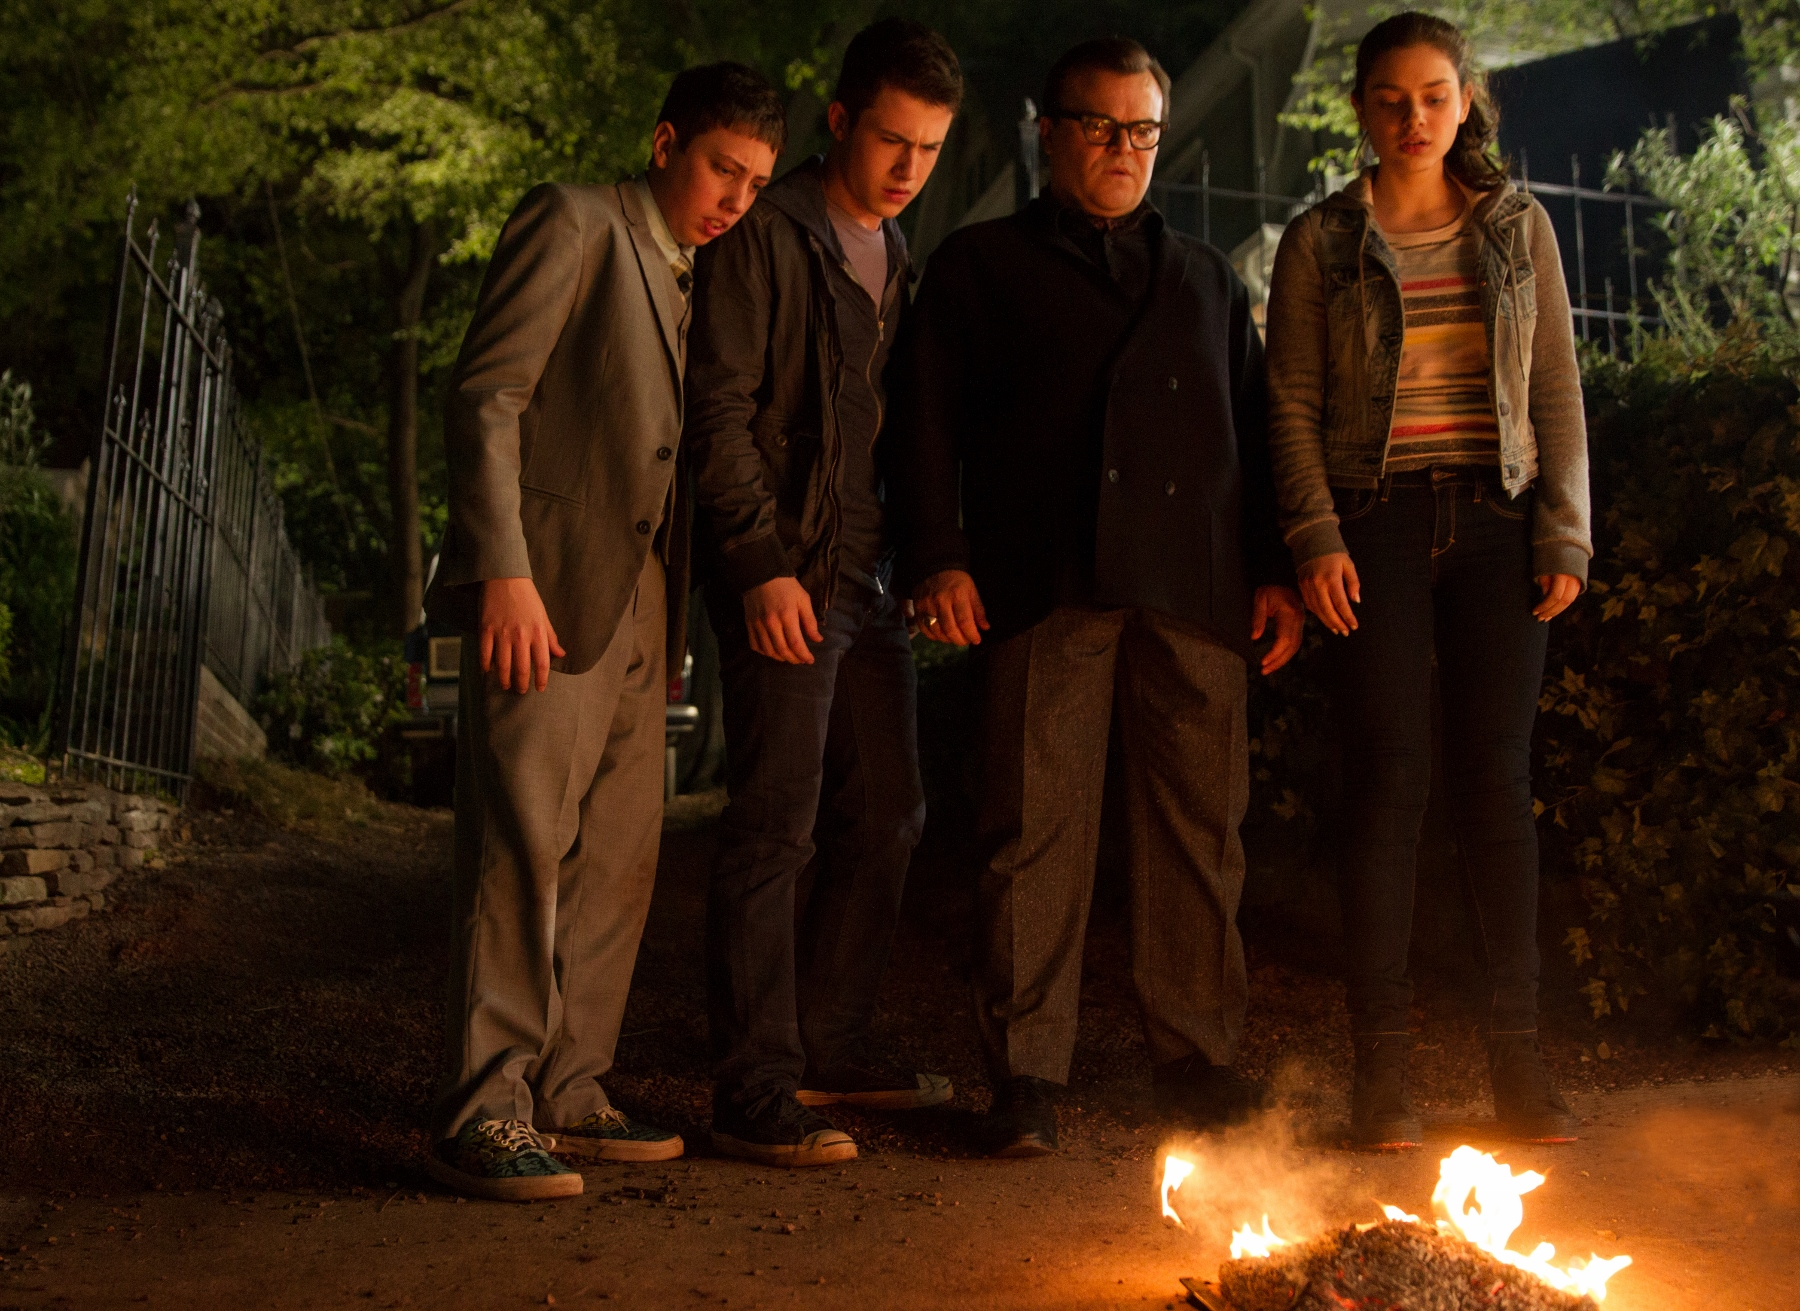 "<p>Dylan Minnette, Jack Black, Odeya Rush and&nbsp;Ryan Lee star in <em>Goosebumps,&nbsp;</em>based on the books by R.L. Stine,<span style=""font-family: proxima-nova-n4, proxima-nova, 'Helvetica Neue', Helvetica, Arial, sans-serif; font-size: 18px; line-height: 28px;"">&nbsp;the story of how the monsters from his books escape into the world, wreak havoc, and the attempts that are made to get them back onto the pages where they belong.</span></p>"